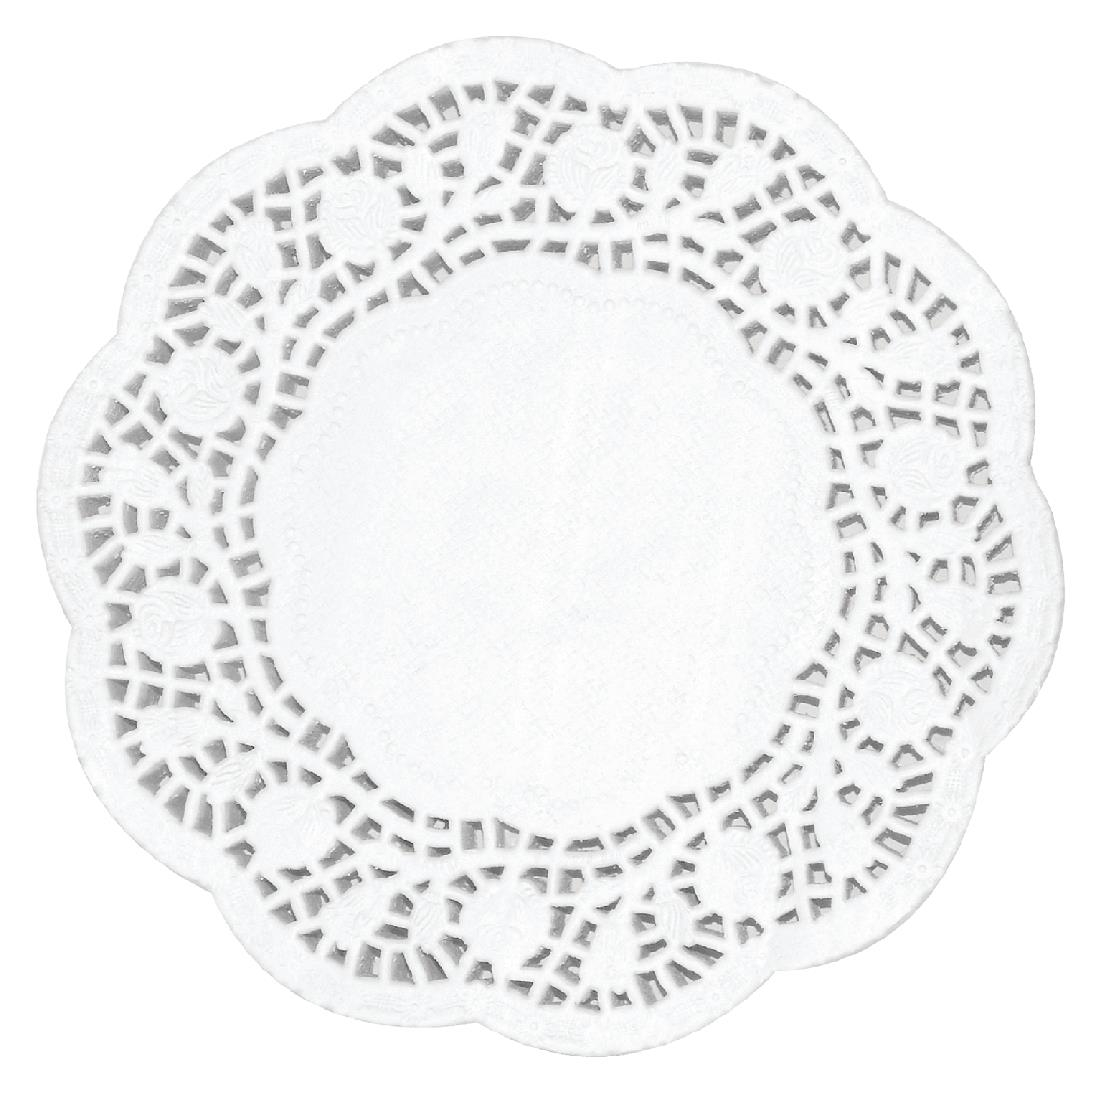 Image of Fiesta Round Paper Doilies 165mm (Pack of 250) Pack of 250